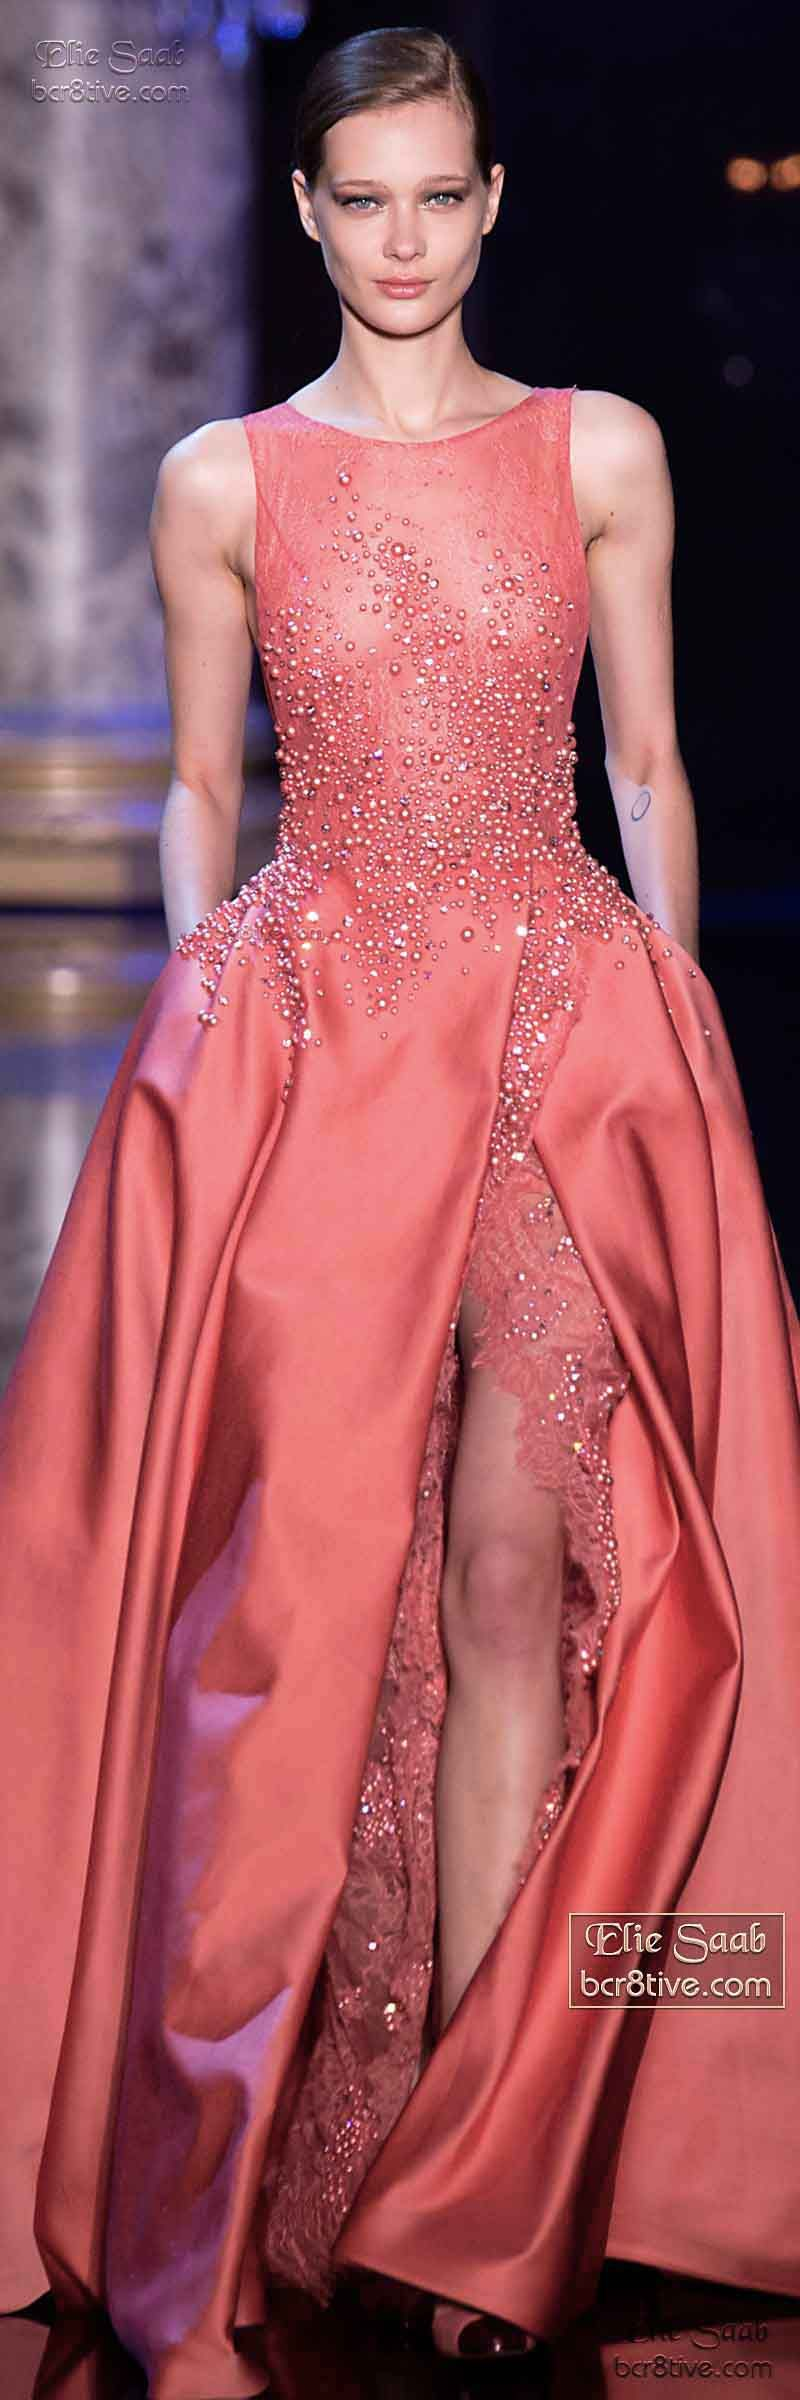 Elie Saab Fall Winter 2014-15 Couture | Vestiditos, Alta costura y ...